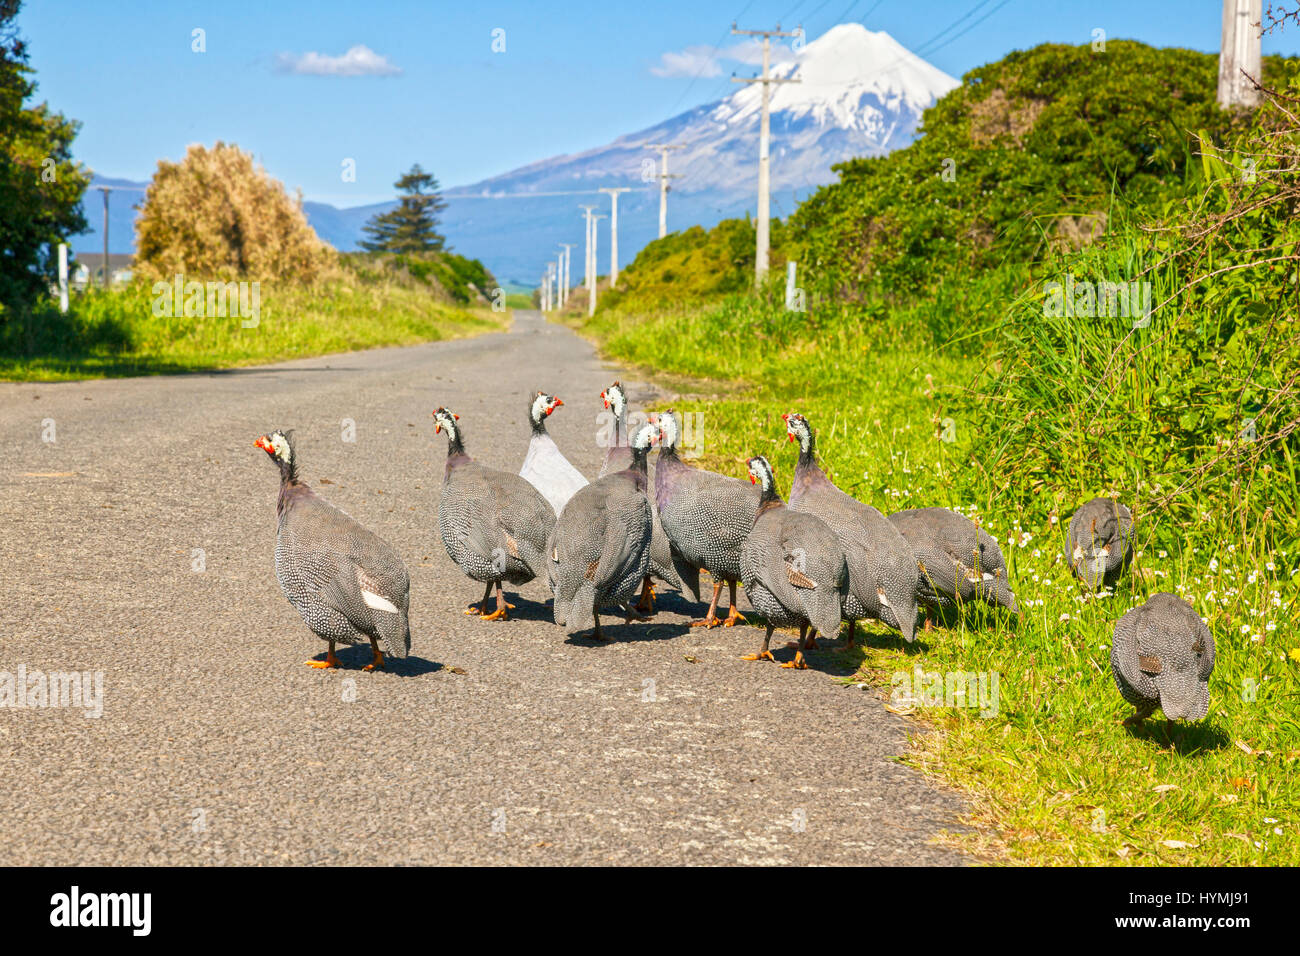 A flock of feral Guinea Fowl at Cape Egmont, with Mount Taranaki in the background. Focus on birds. - Stock Image